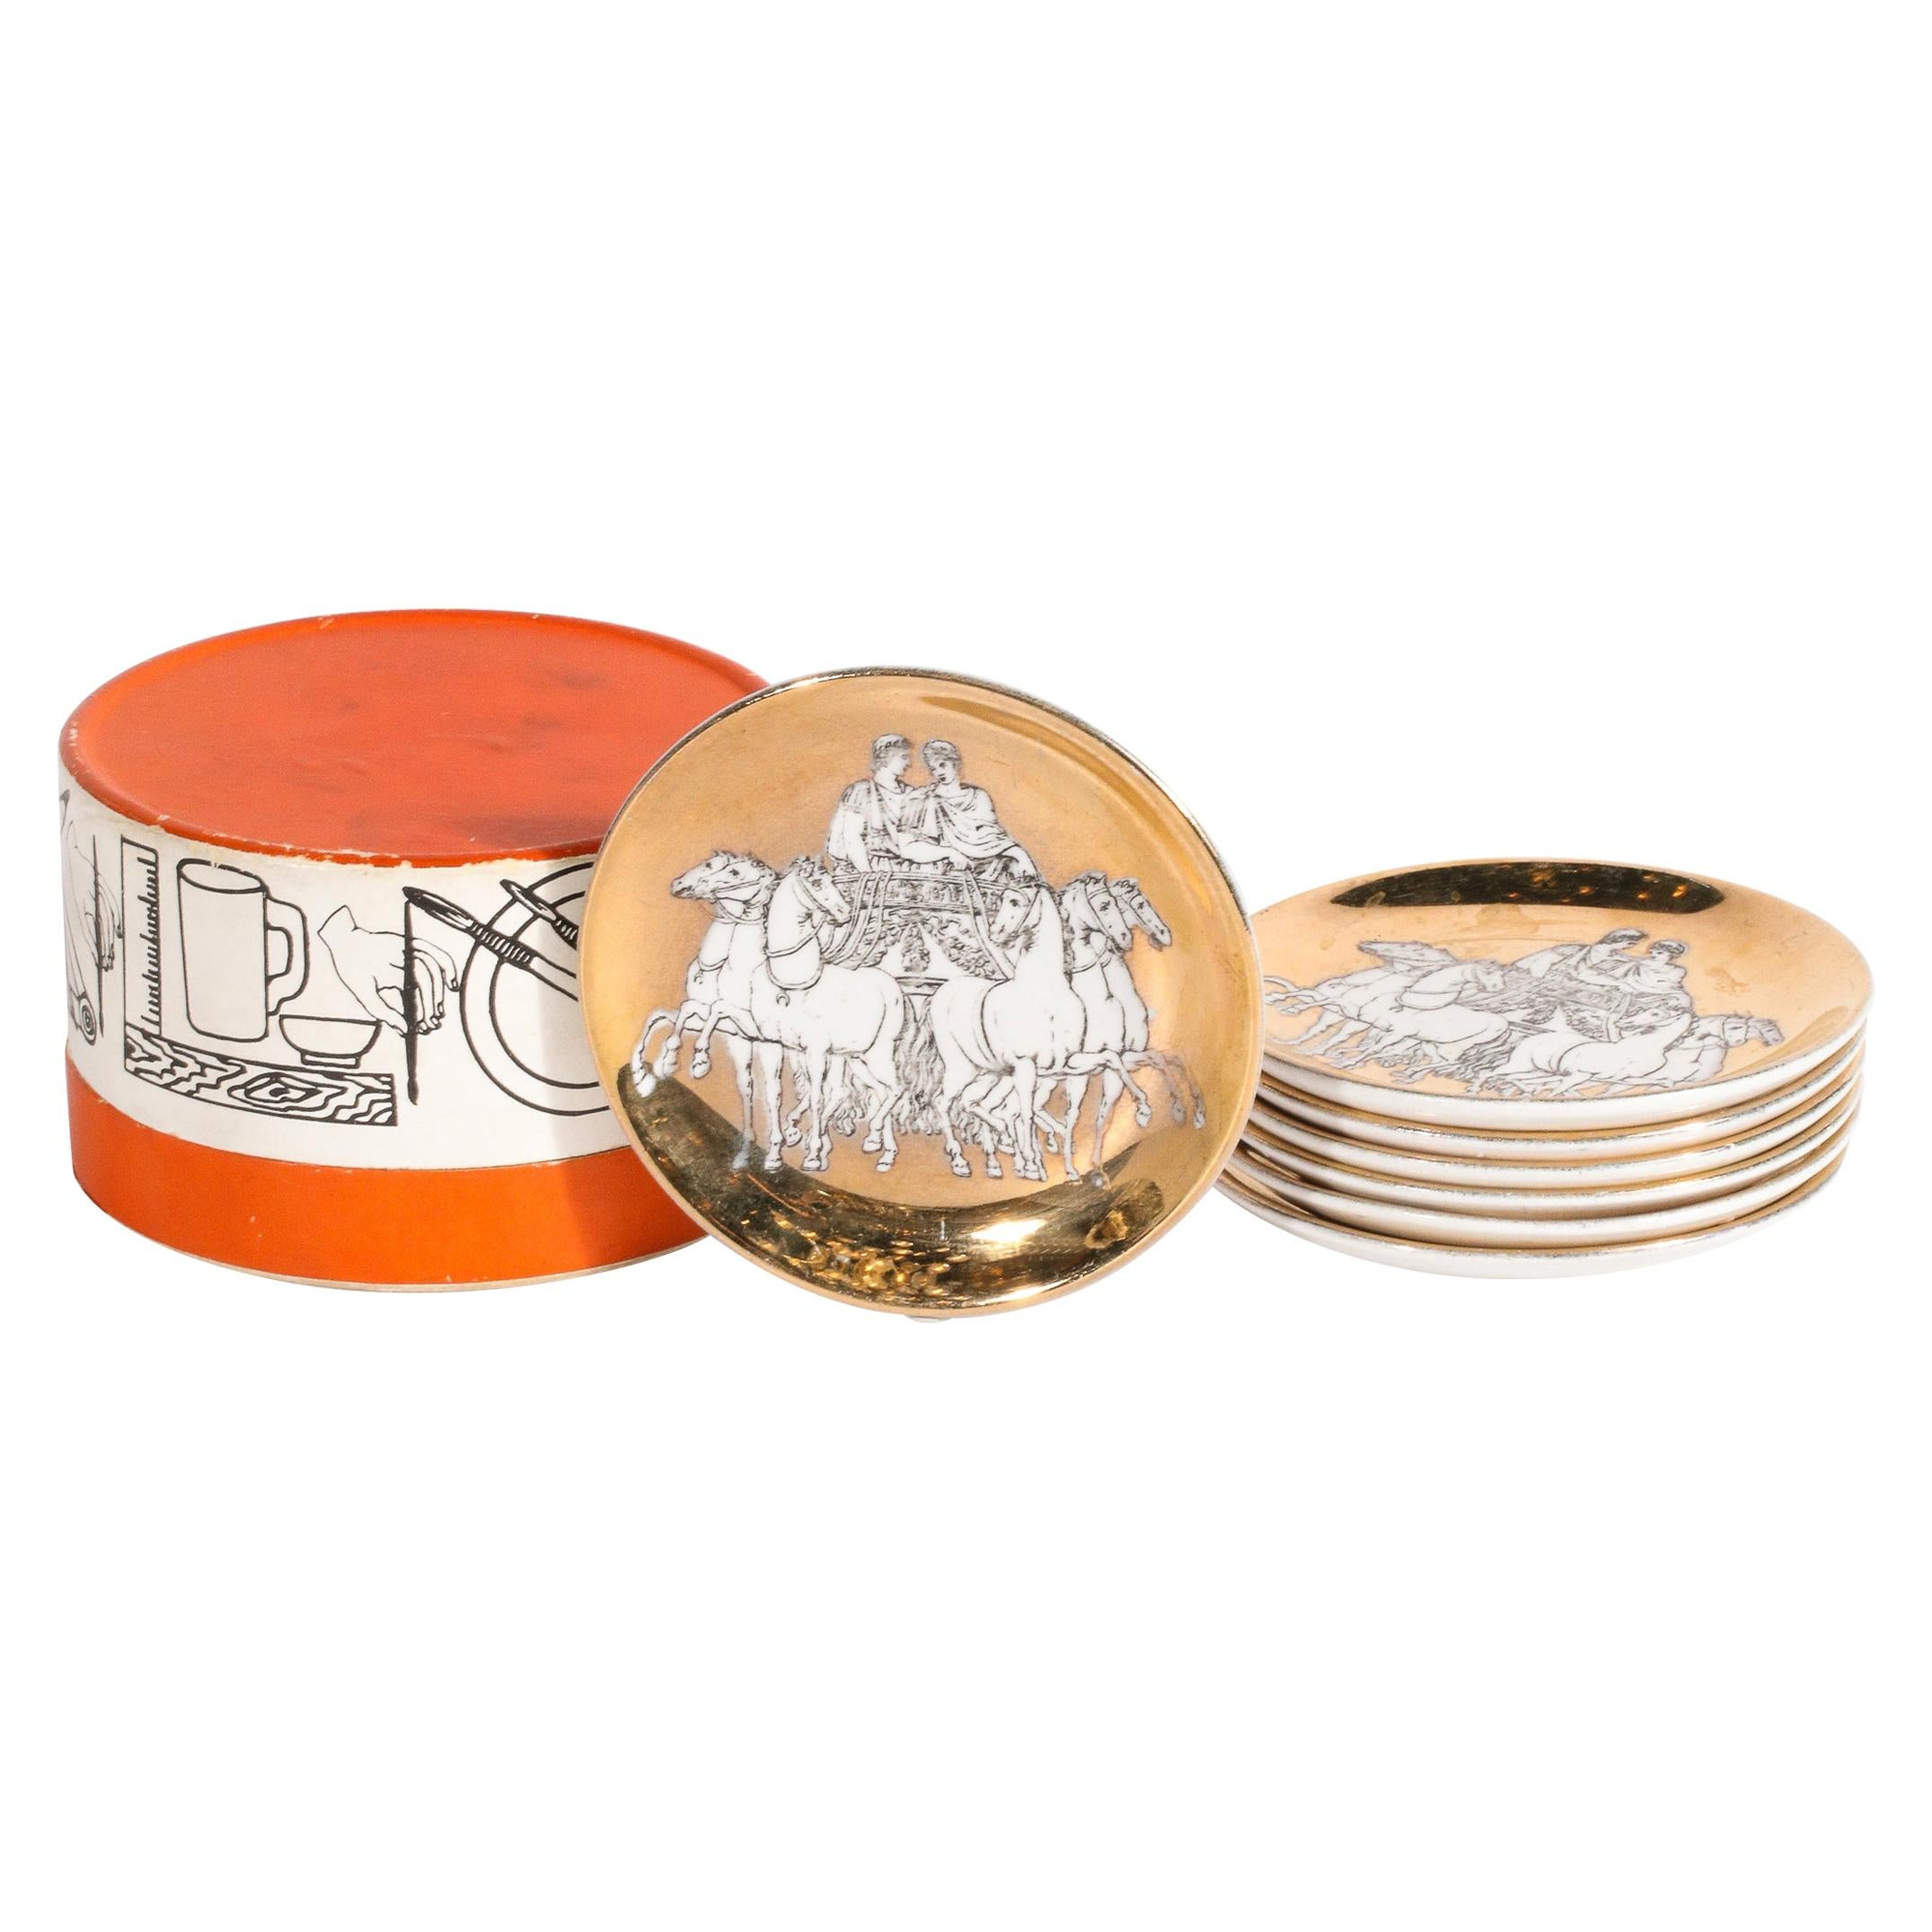 Set of Six 24kt Gold Plated Roman Themed Coasters Signed by Piero Fornasetti